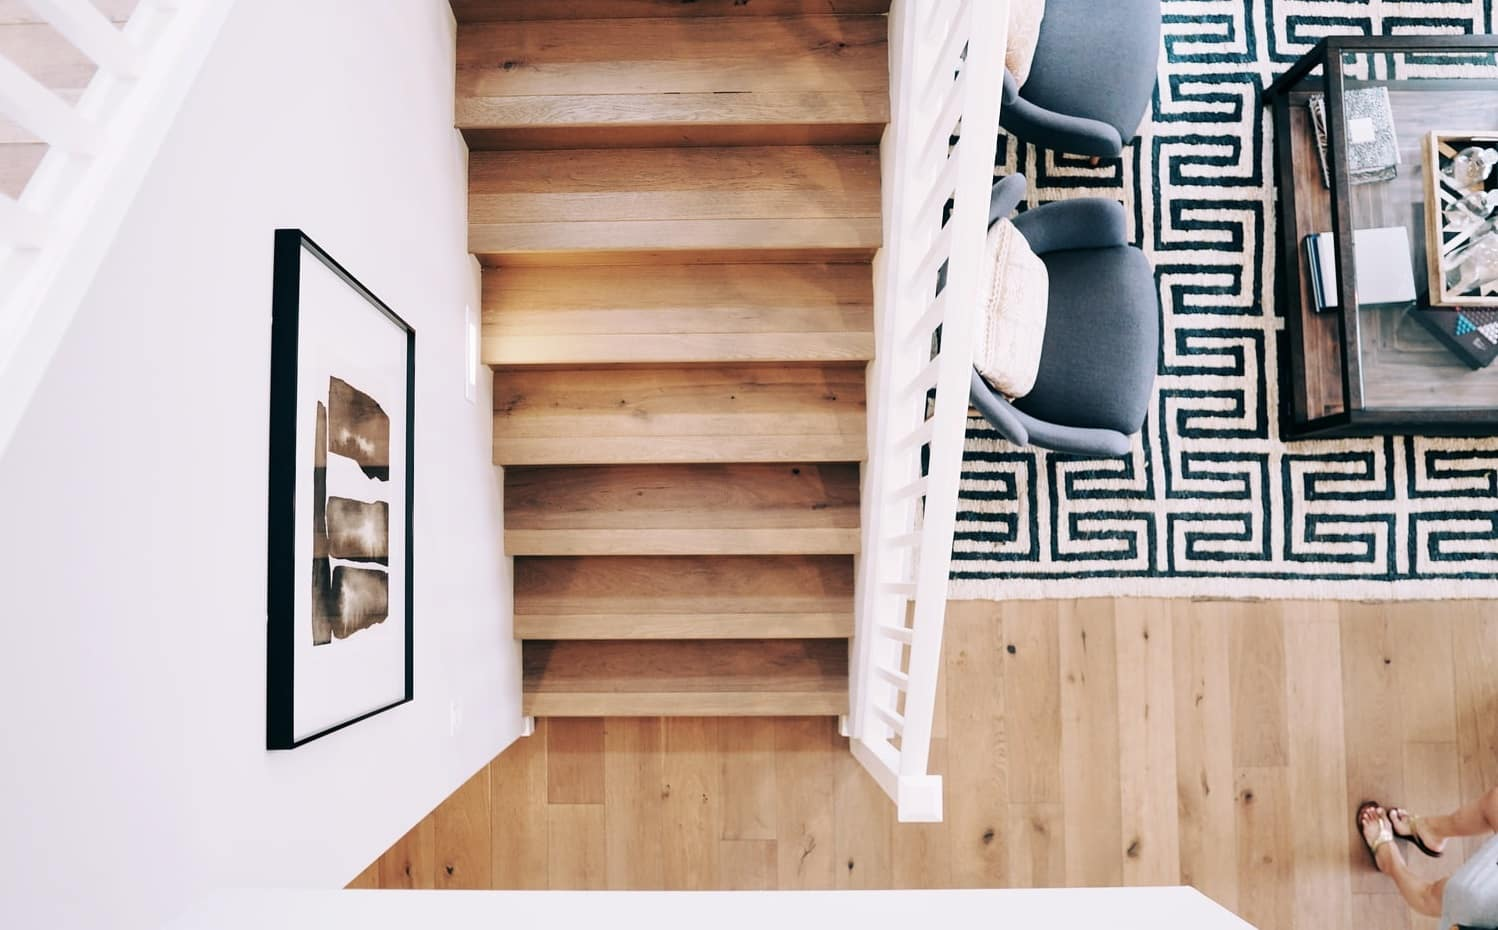 What Types of Wood Are Suitable Flooring Solutions